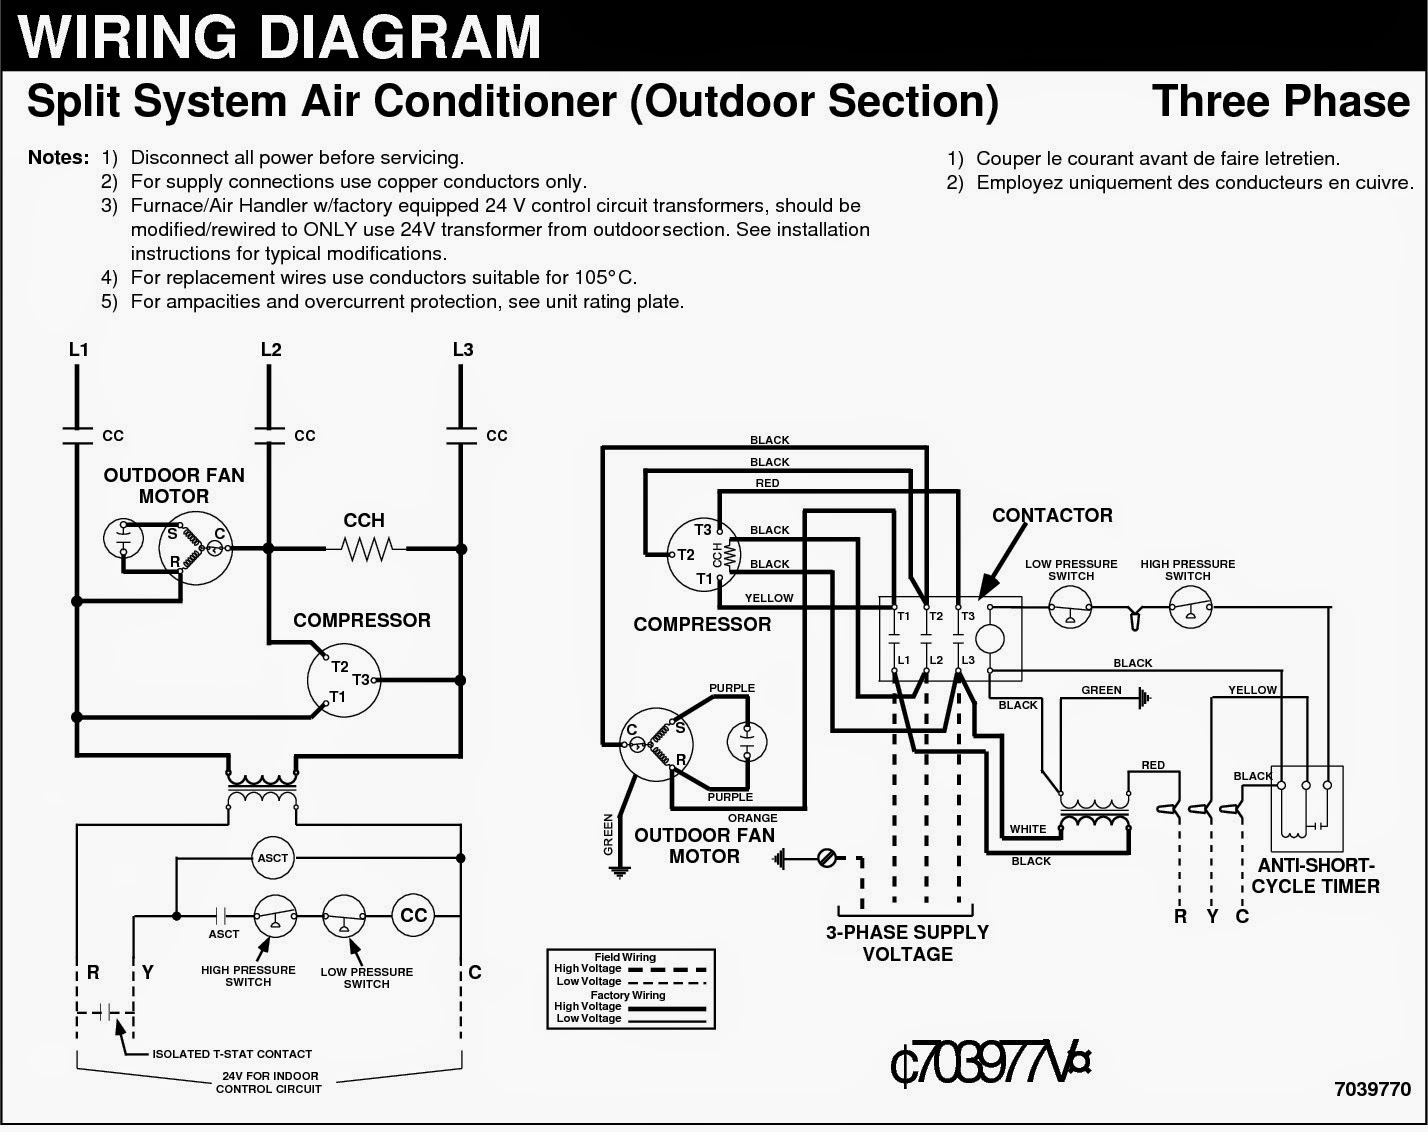 Wiring Diagram 1 Phase Ac Split Unit besides Honda Civic Heater Valve Location besides Uhfrb furthermore Payne Heat Pump Air Handler Wiring Diagram together with 80300. on ac condenser fan motor wiring diagram